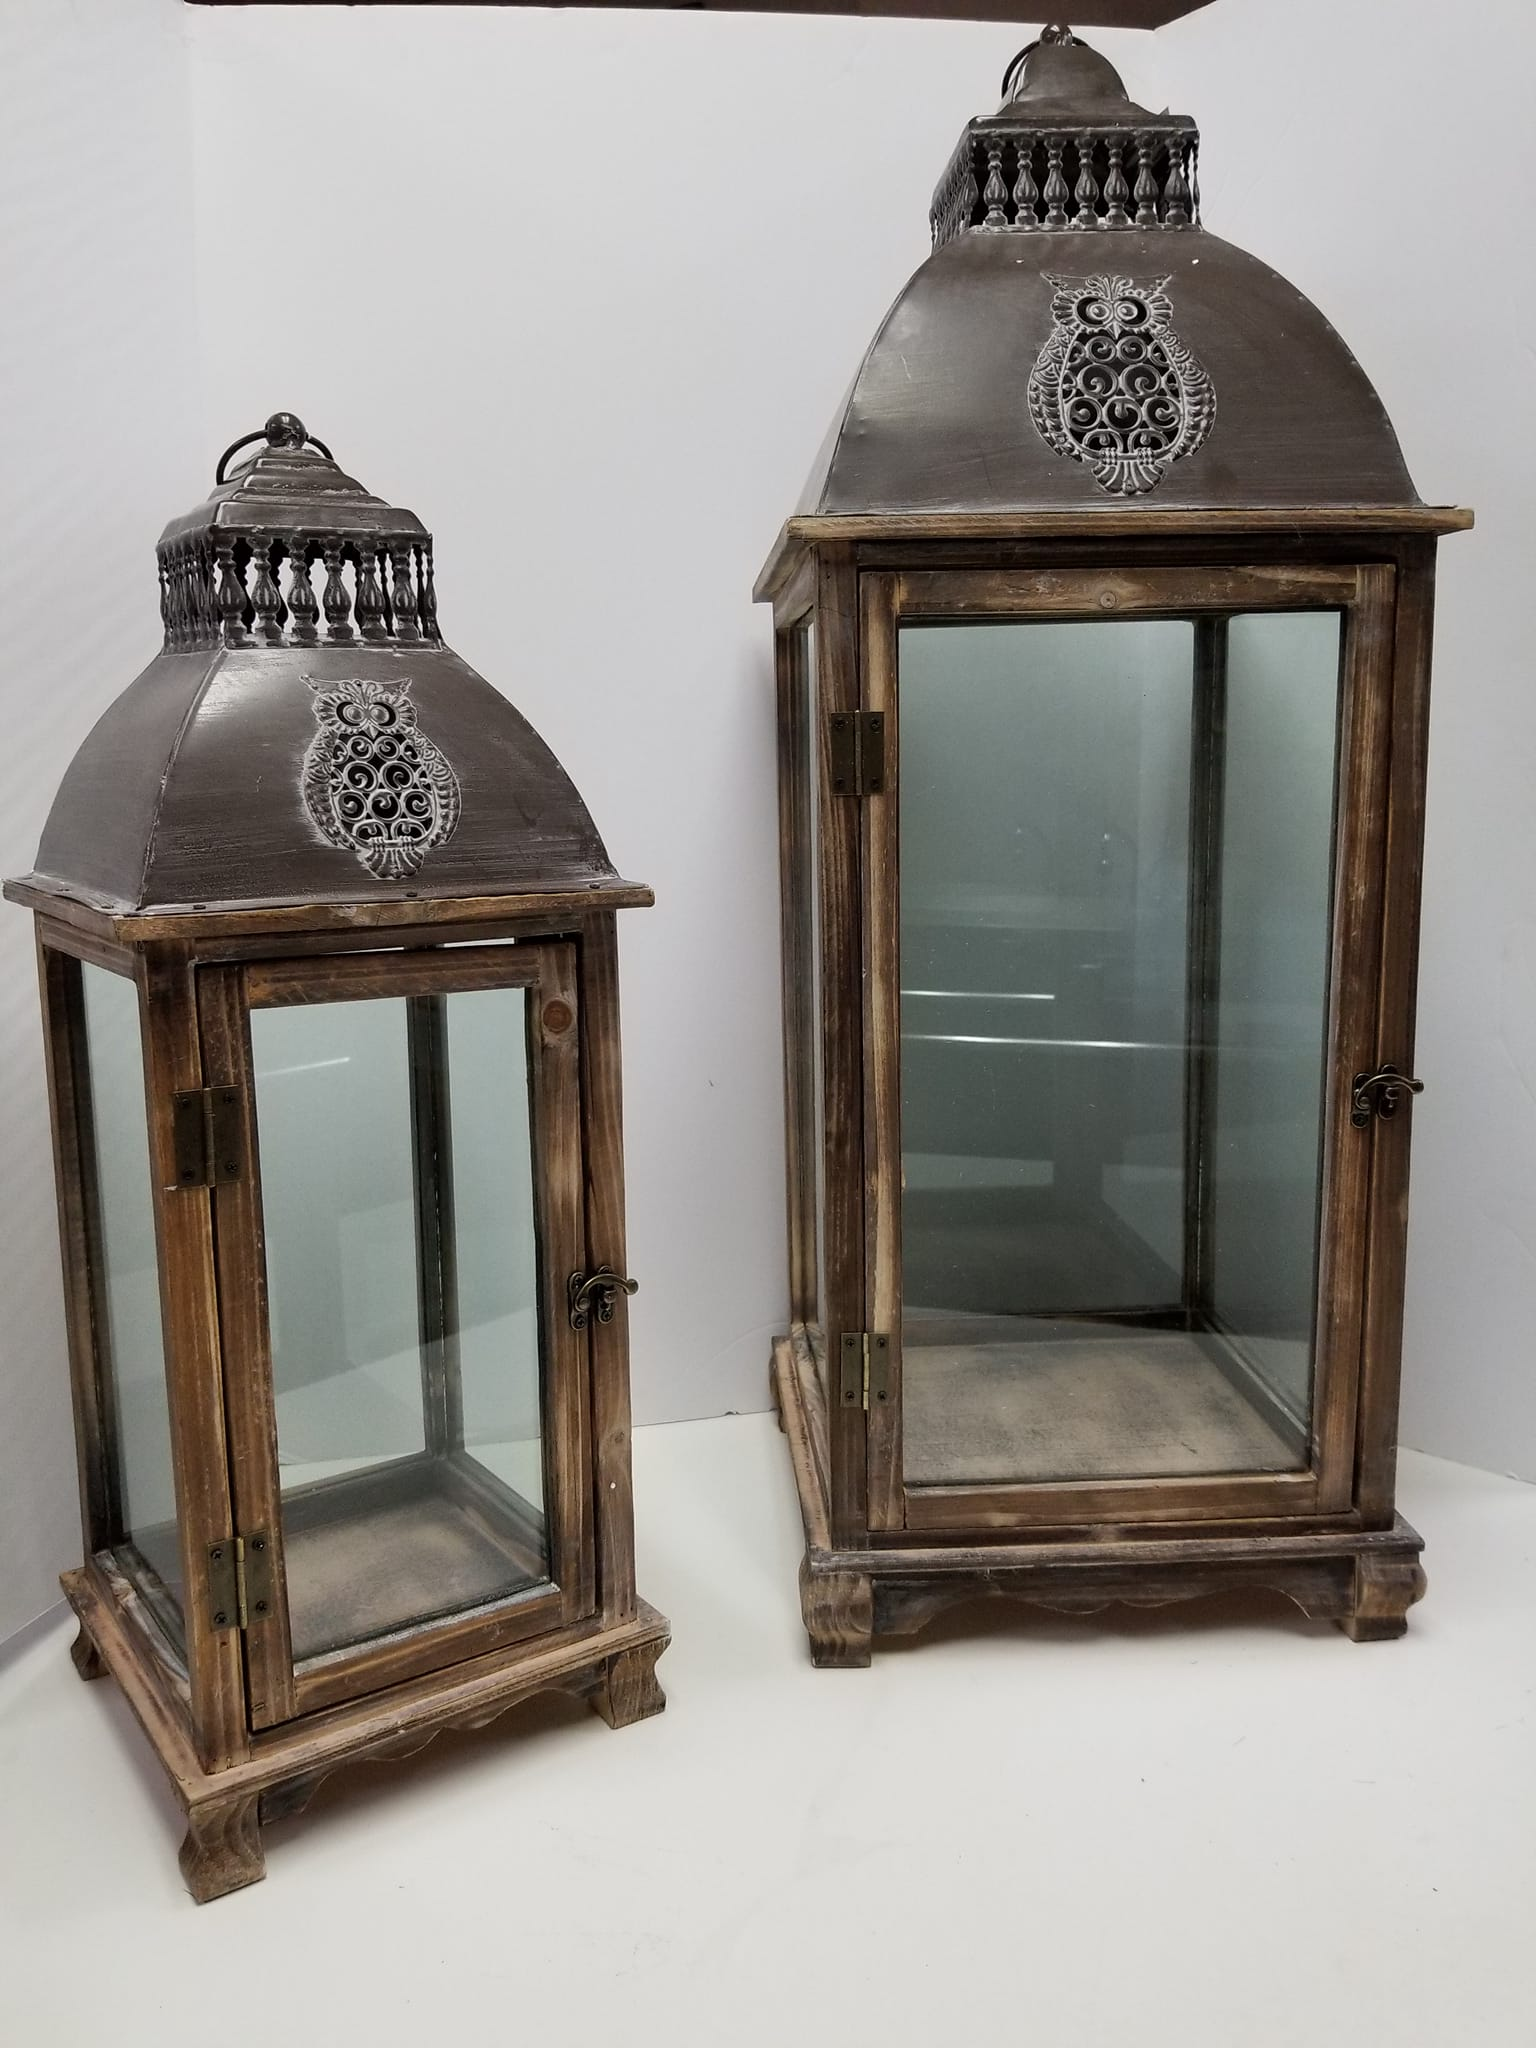 Decorative wooden Lanterns for your home decor